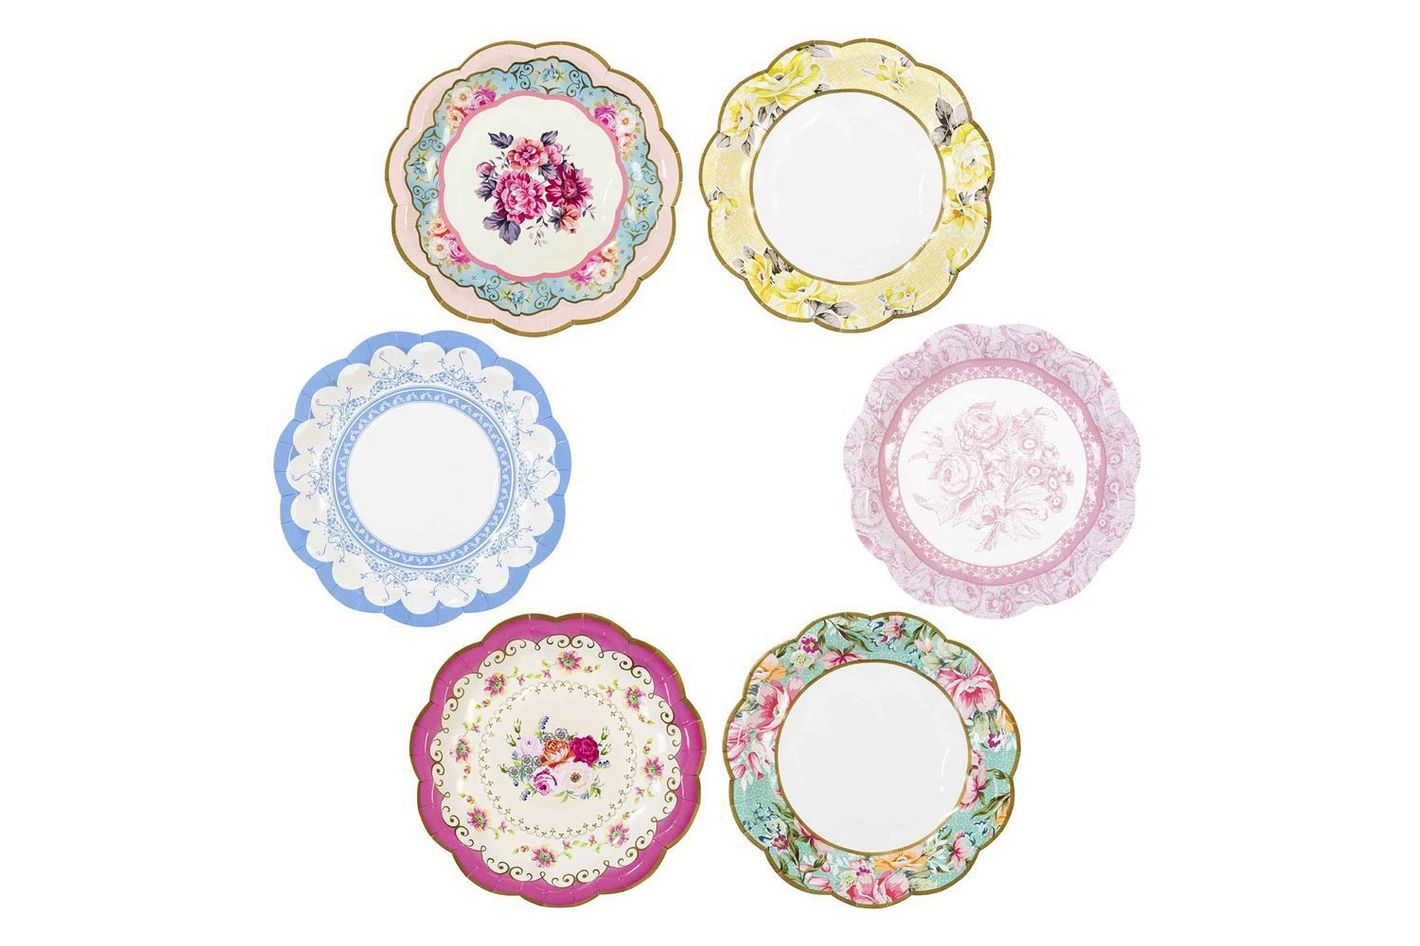 Talking Tables Truly Scrumptious Vintage Floral Small Paper Plates 12-Count 6.75 Inches  sc 1 st  NYMag & Best Fancy Disposable Plates on Amazon